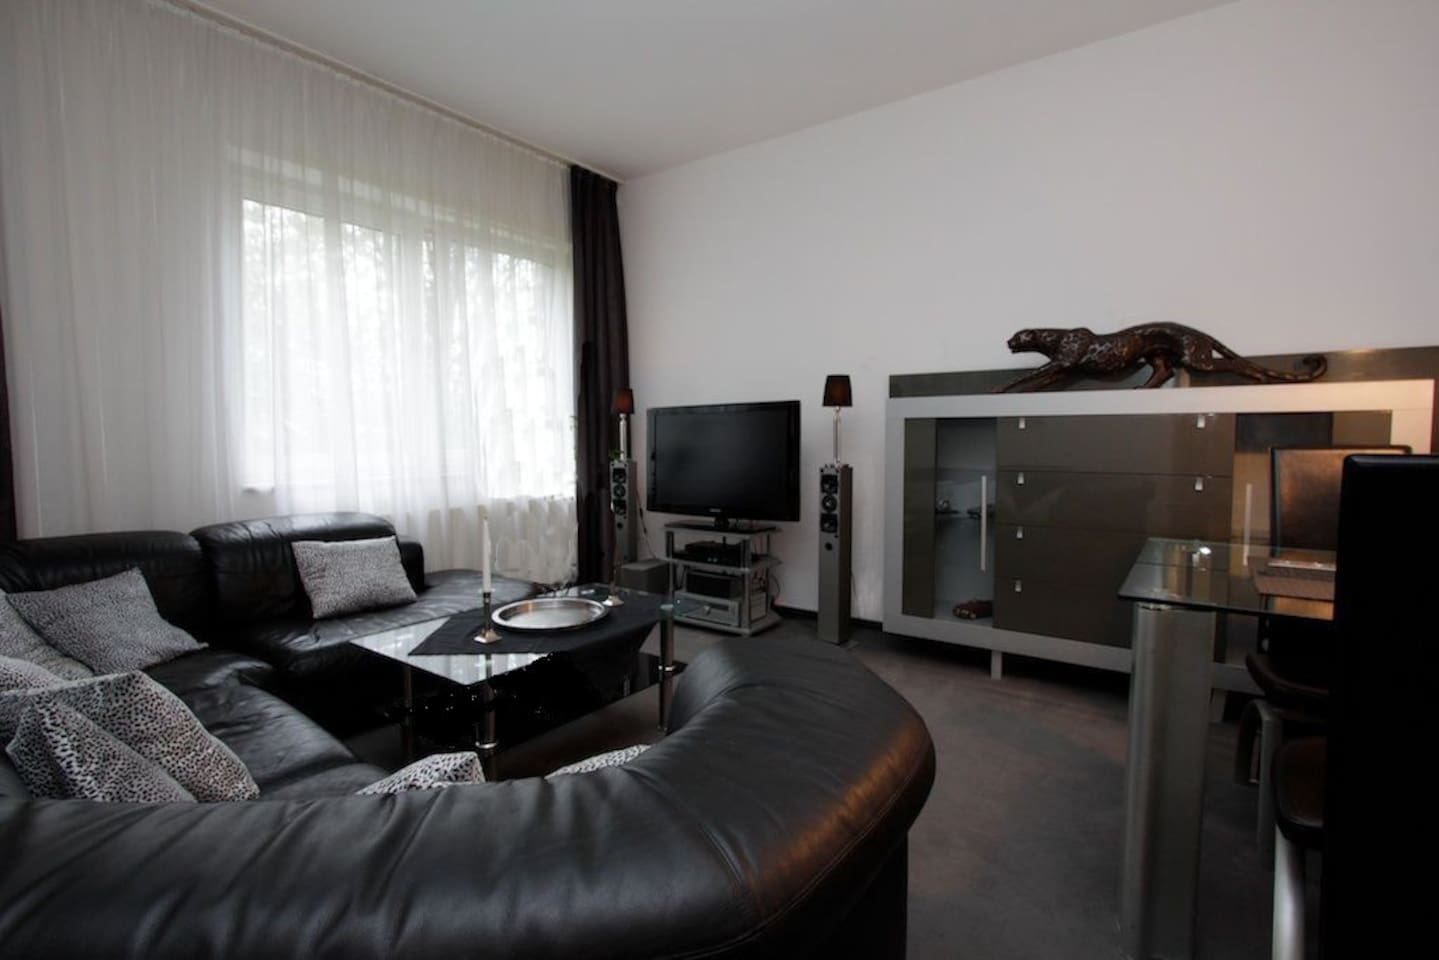 2 Zimmer Apartment in Hannover